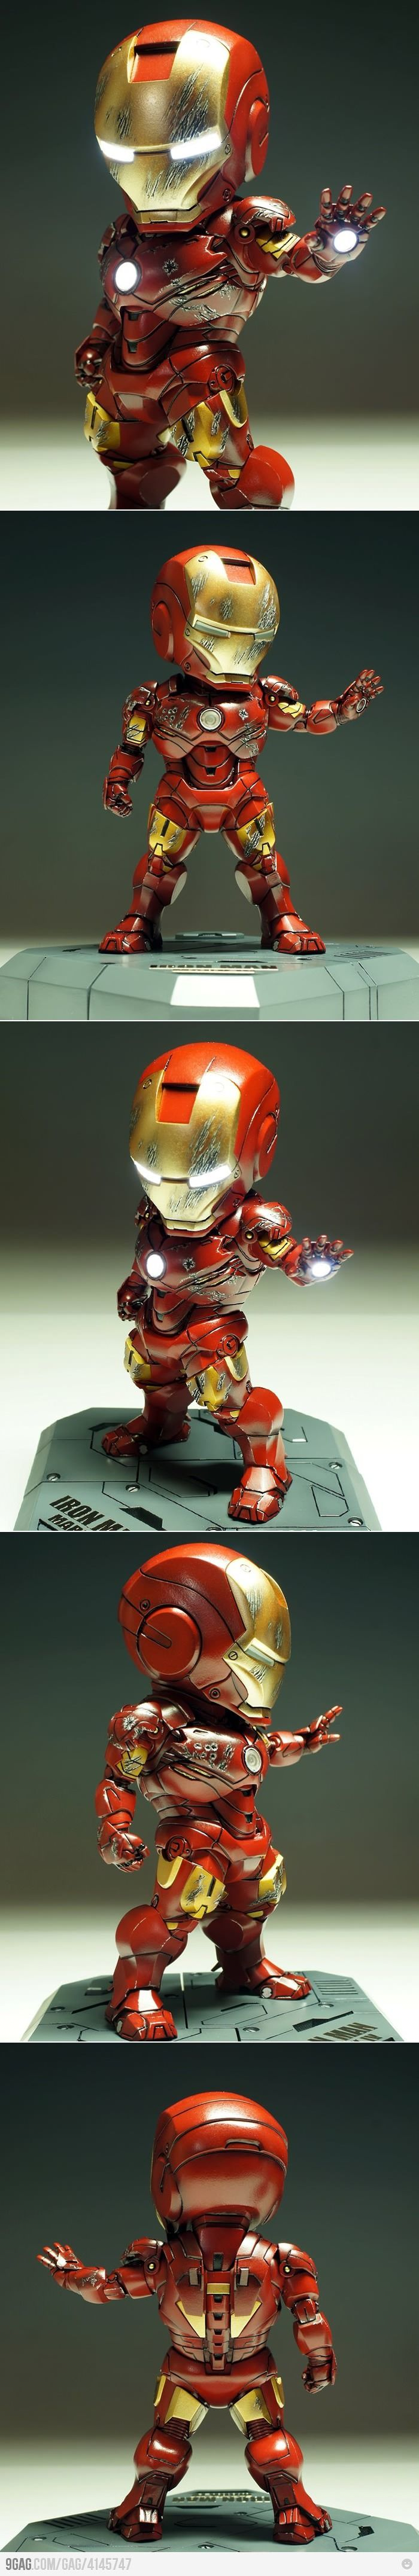 Chibi Iron Man?: Geek, Baby Ironman, Awesome Irons, Man Figures, Irons Man, Iron Man, Baby Irons, Action Figures, Minis